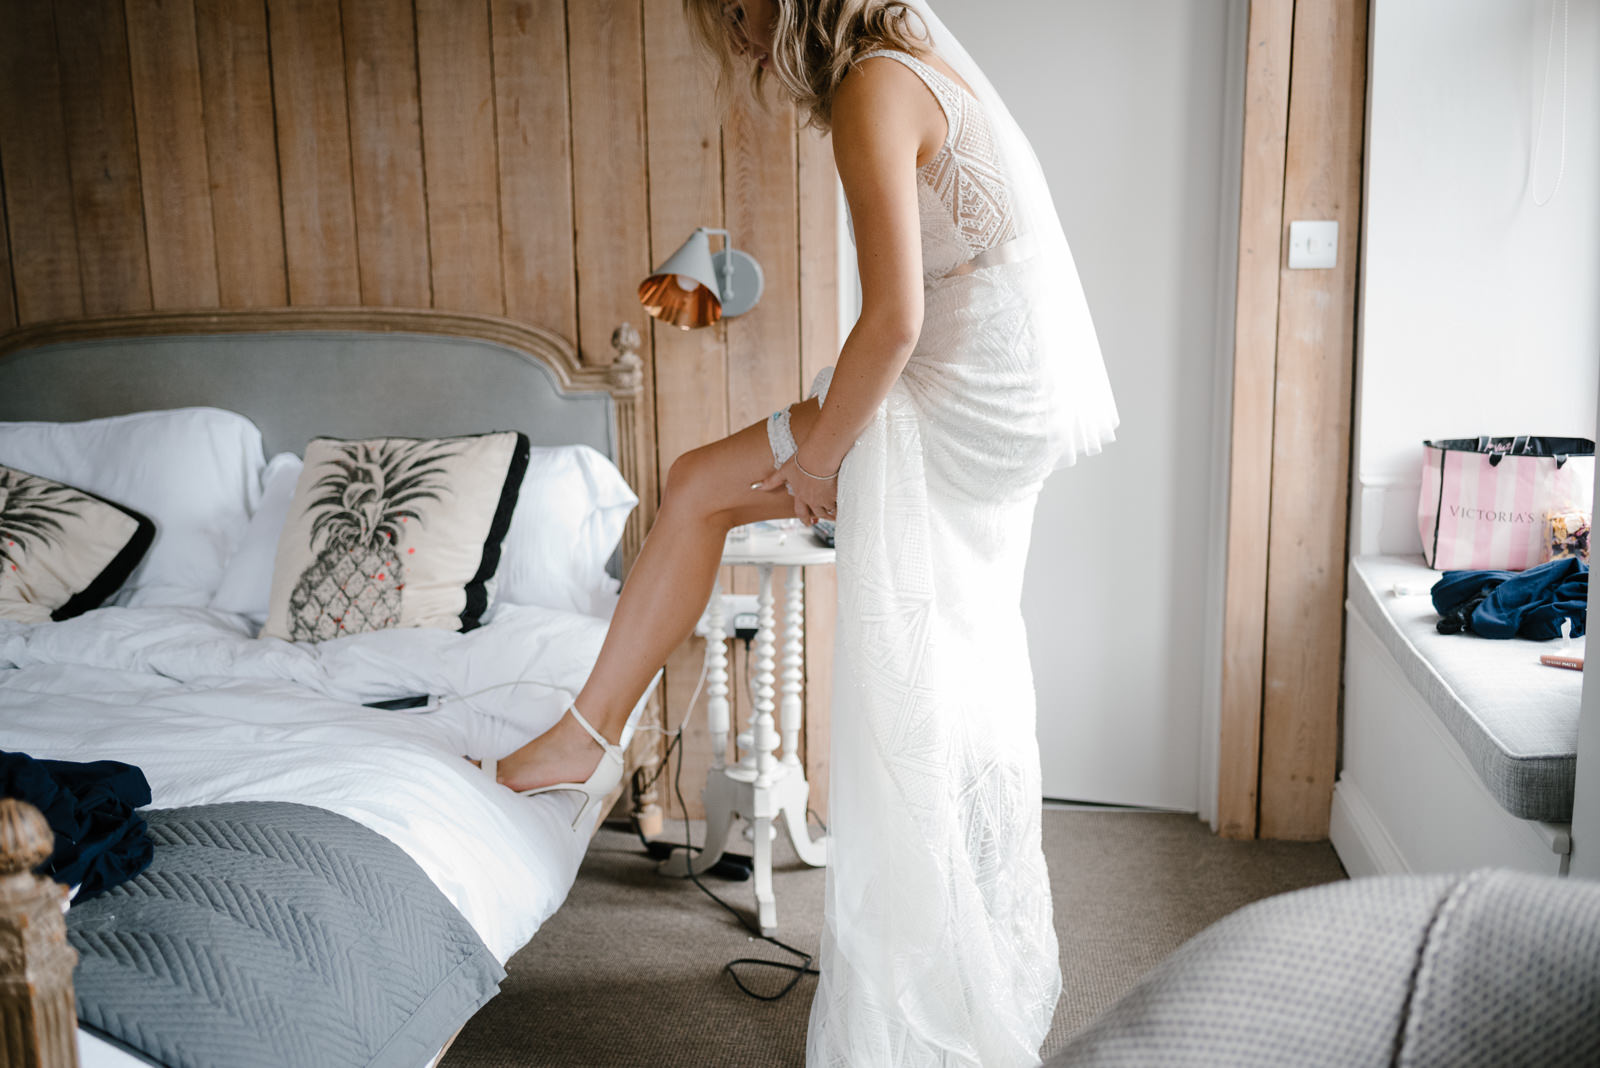 modern bride putting on garter for her modern wedding with industrial vibes